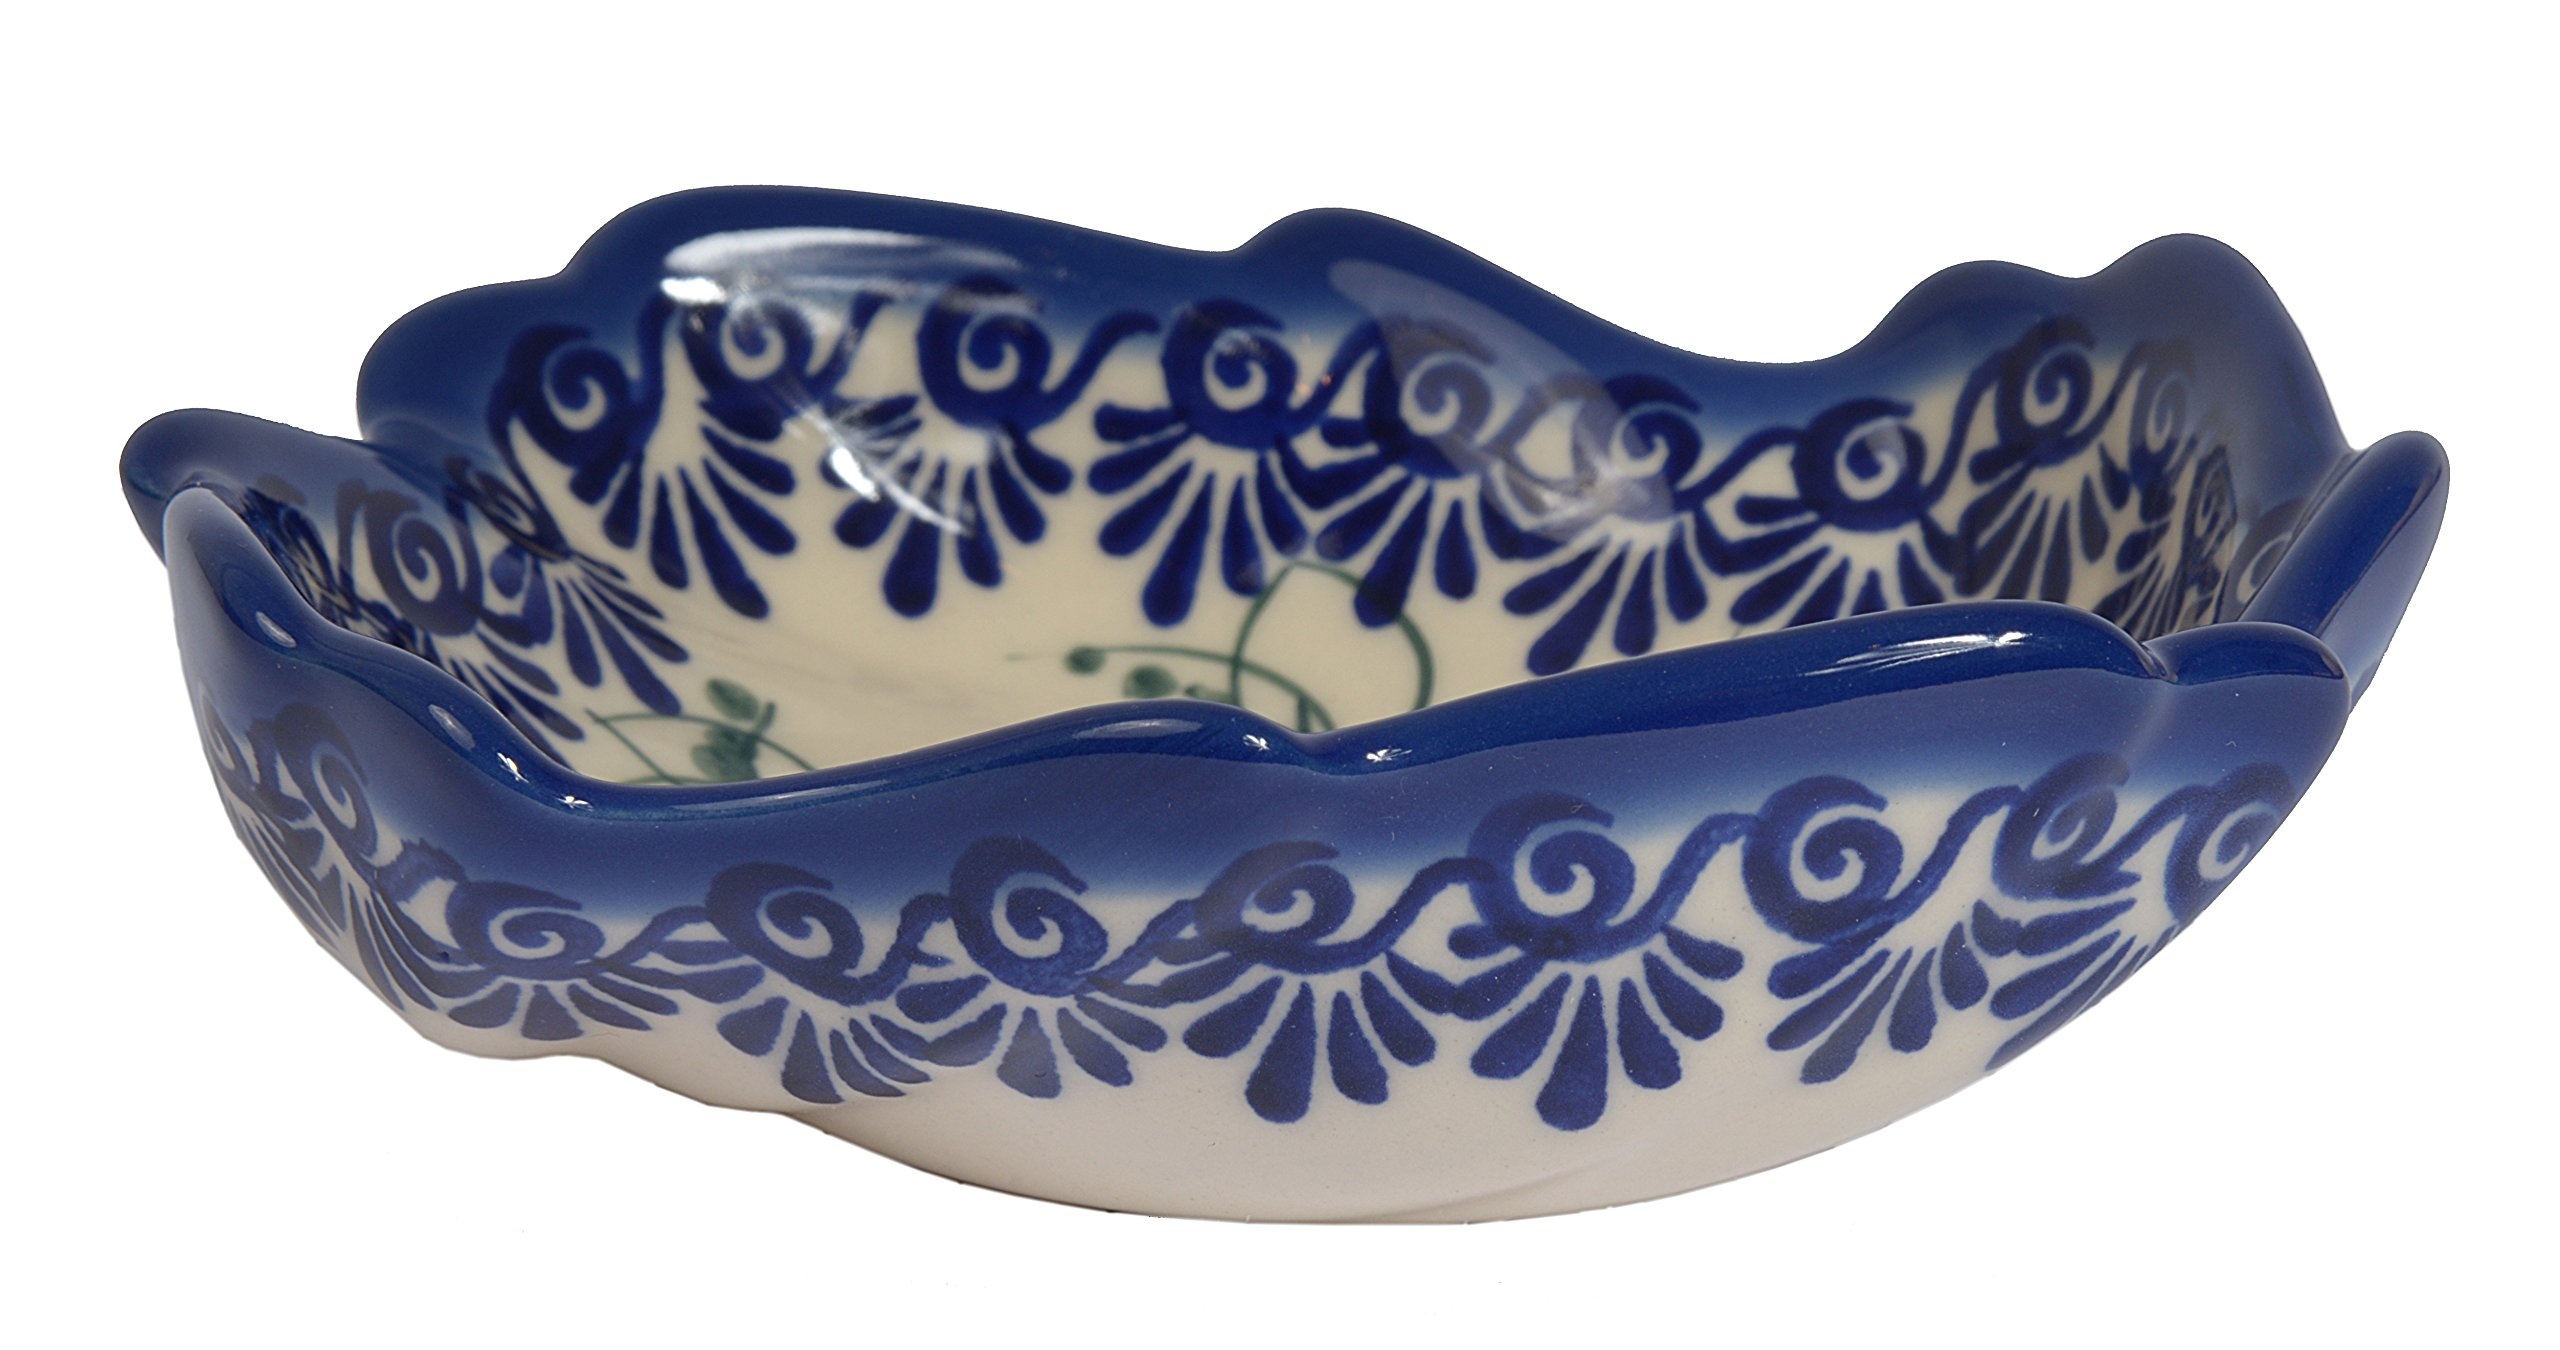 Traditional Polish Pottery, Decorative Snack & Dip Bowls, Handcrafted Ceramic Shell Bowl (200ml), Boleslawiec Style Pattern, M.501.PANSY